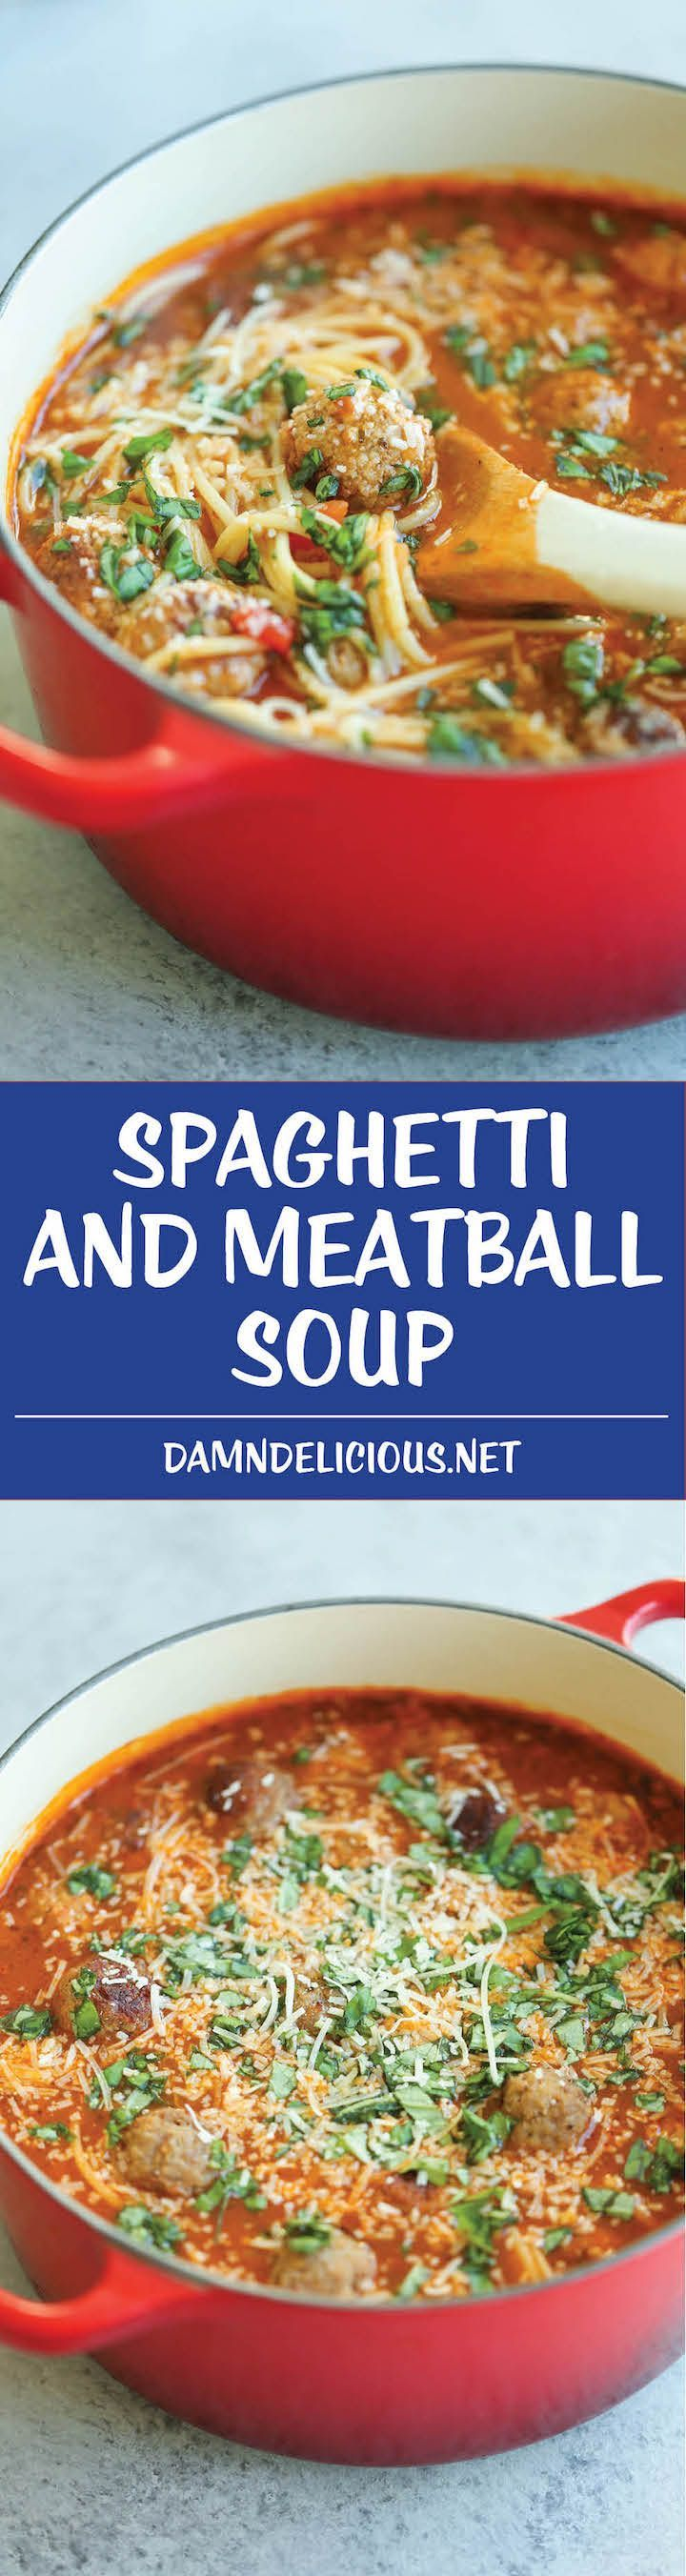 Spaghetti and Meatball Soup - Everyone's favorite dish is turned into the creamiest, coziest soup ever! Made in just 20 min. Kid and adult-friendly!